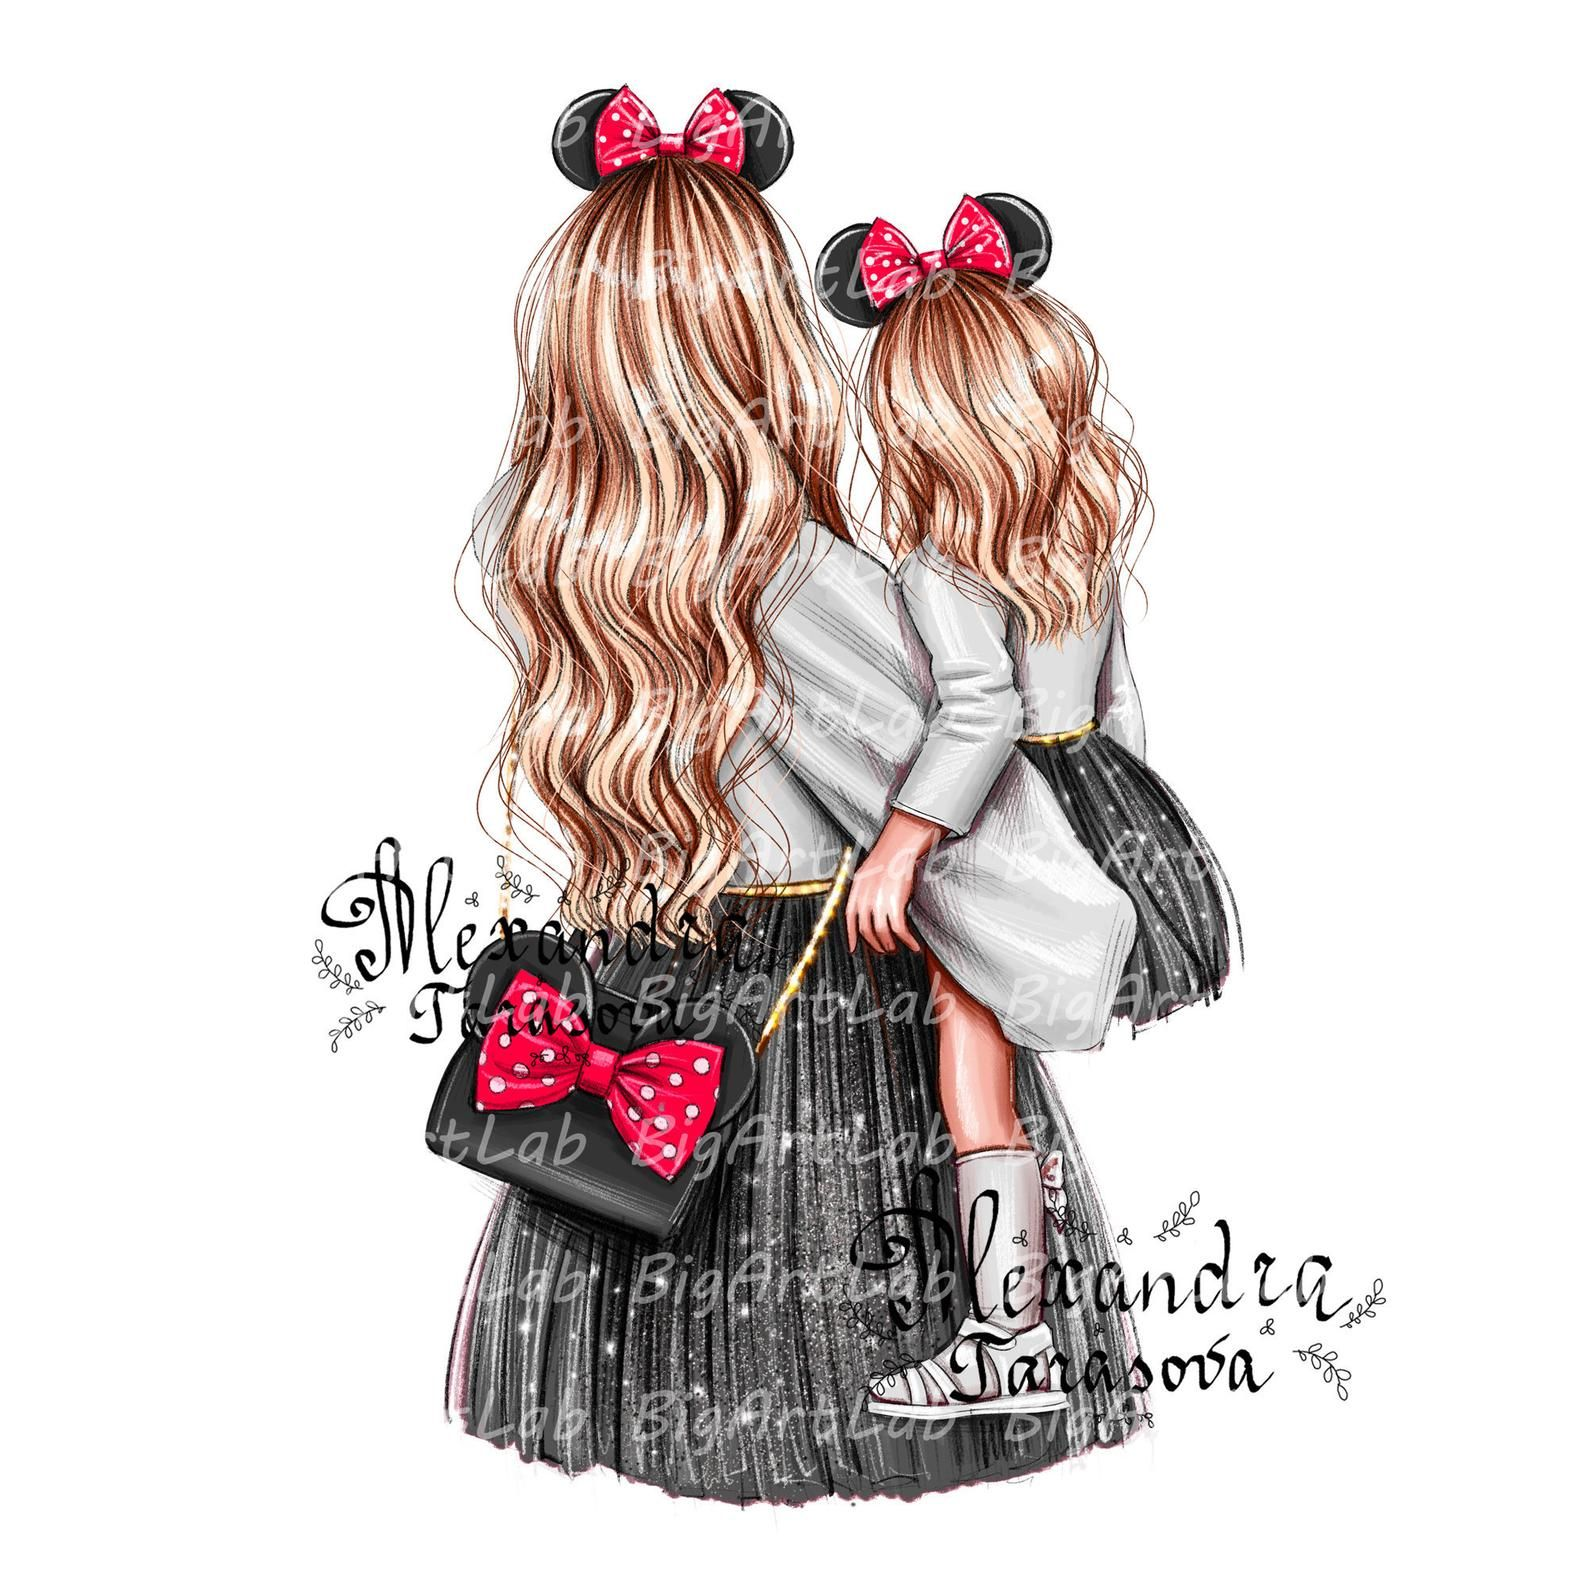 Instant download girl chanel bag png files clipart wall art fashion illustration girl friend gift digital watercolor love style disney